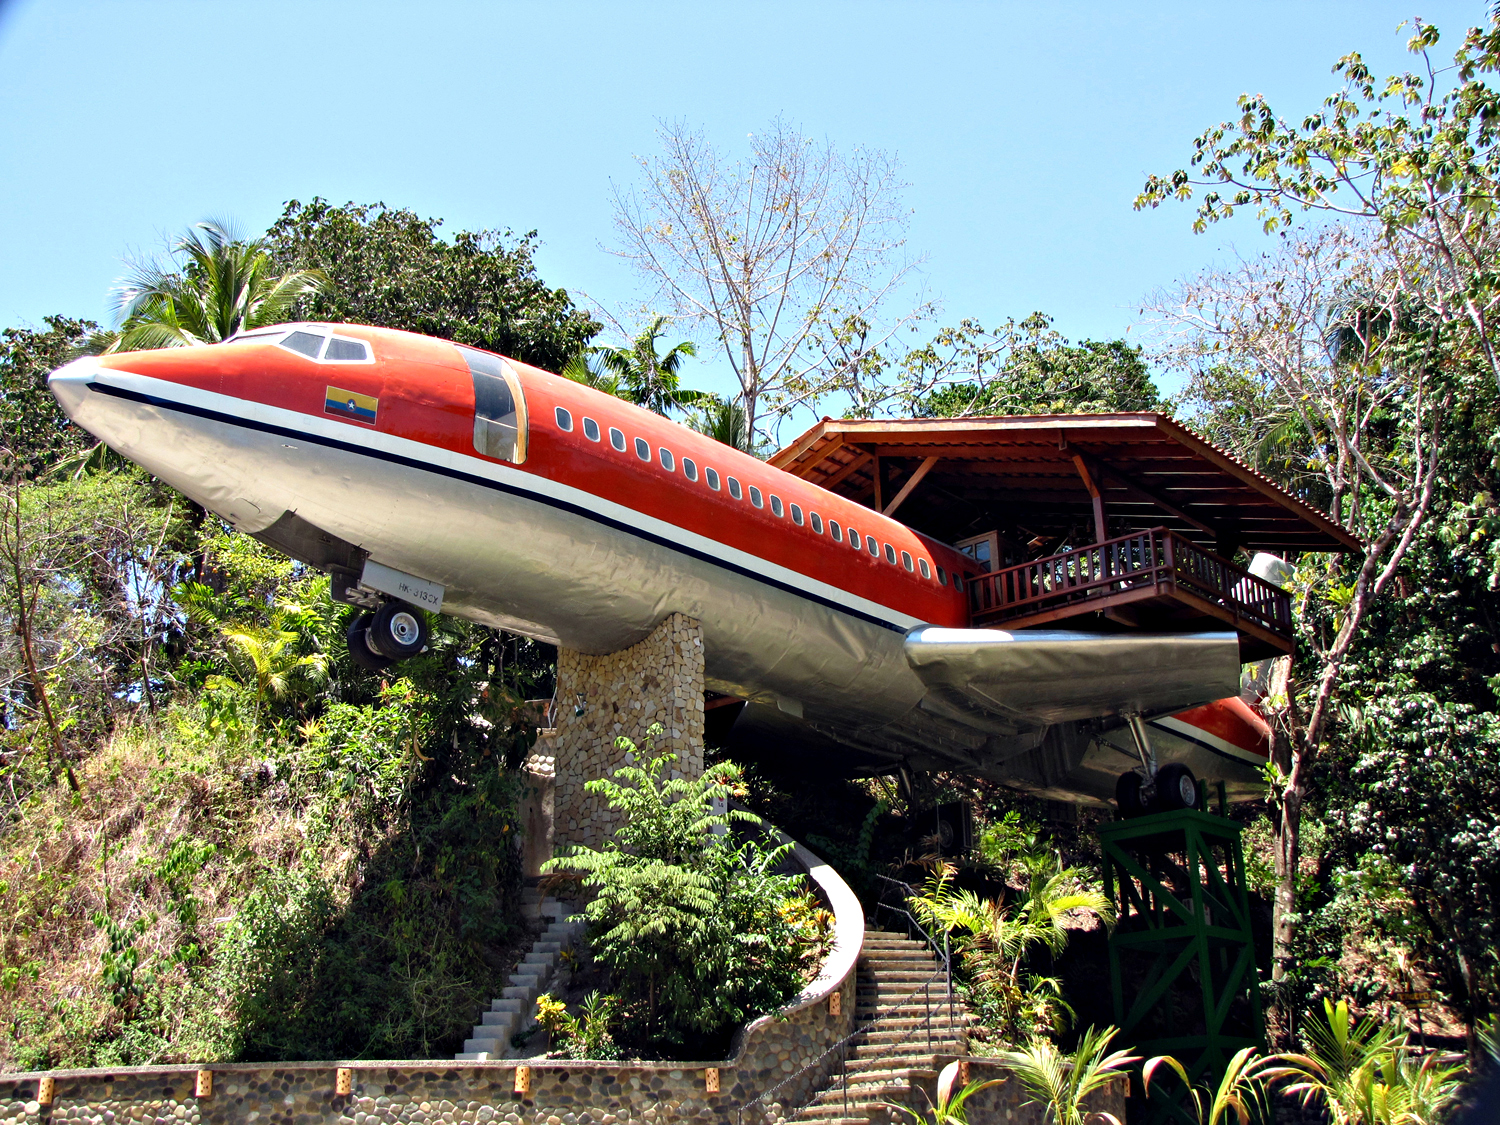 Vintage 1965 Boeing 727 Transformed into Hotel in Costa Rica